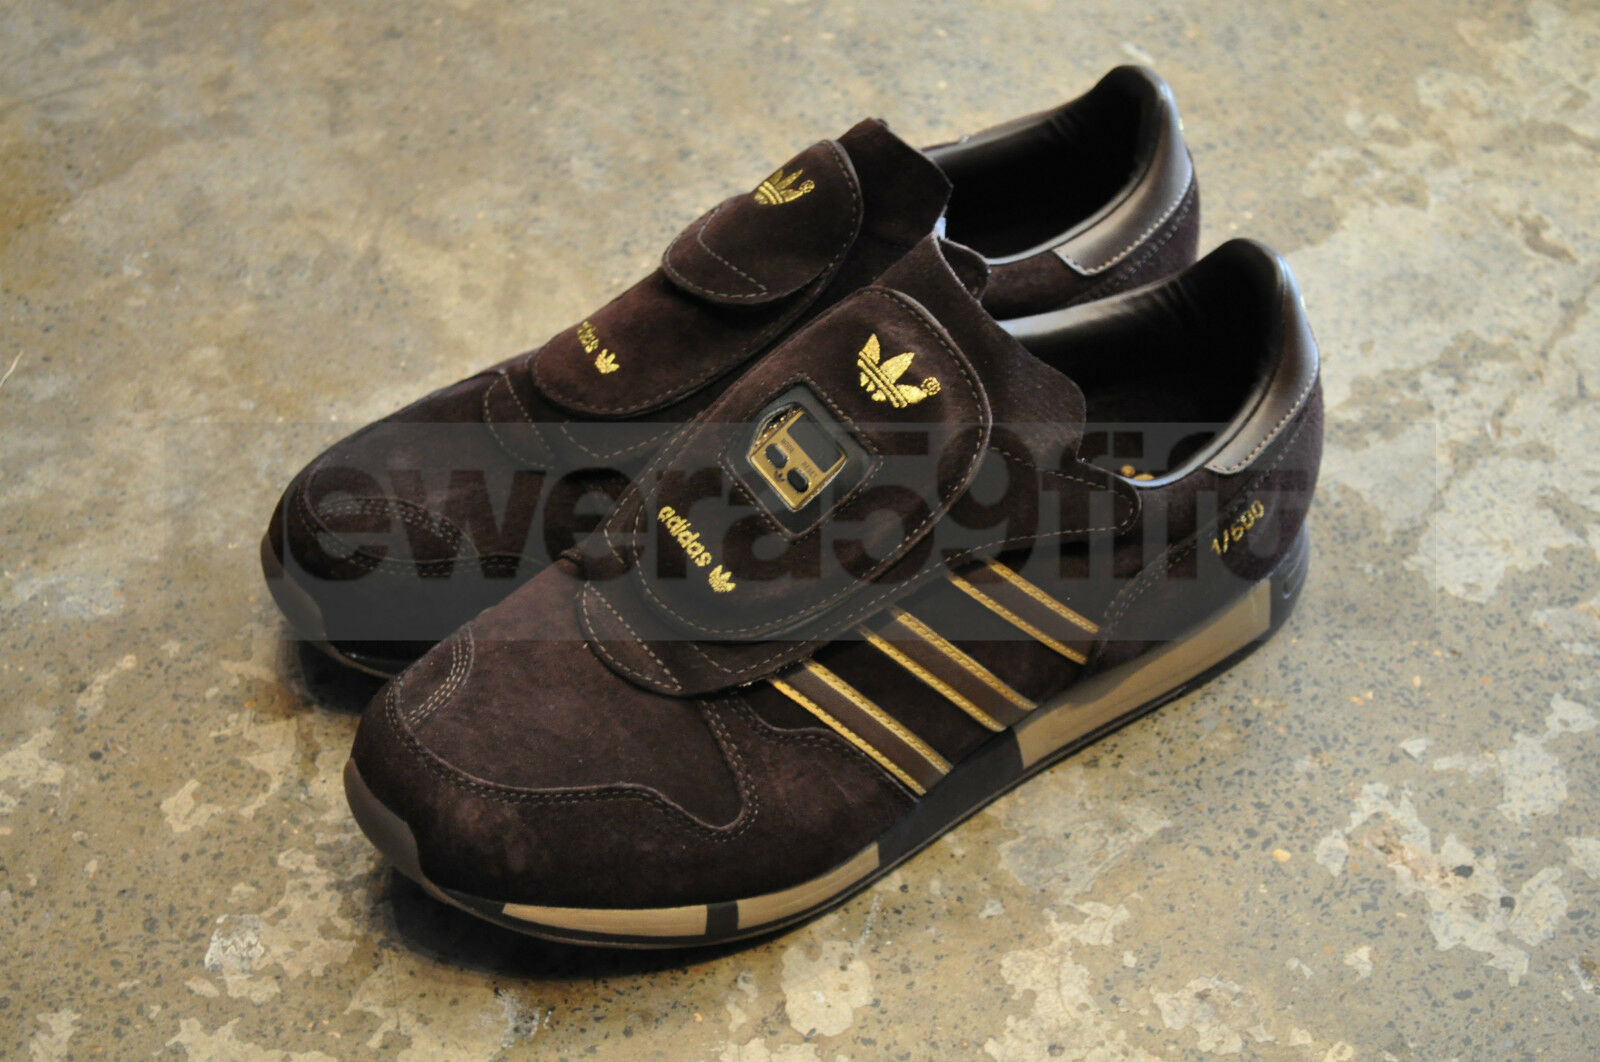 62e079336 Adidas Micropacer Express Black Gold (Buck) - UK 10  US 10.5  EU ...